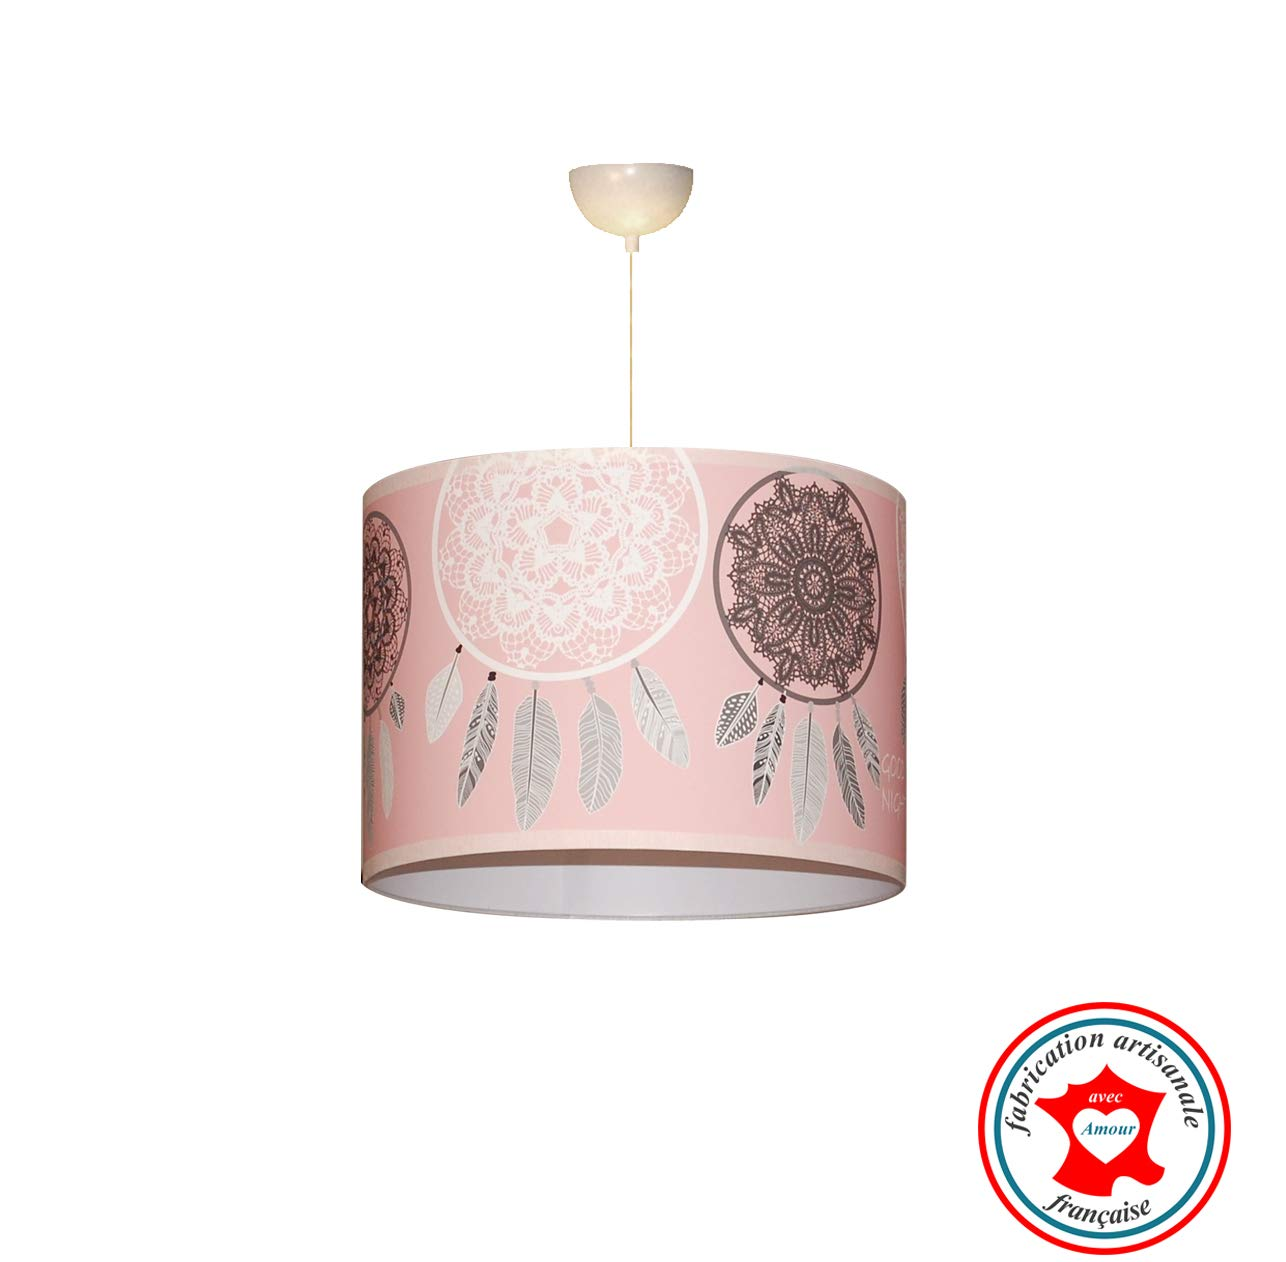 Suspension enfant'Attrape rê ves', suspension fille, lampe fille, dé coration chambre fille, dé coration fille décoration chambre fille décoration fille